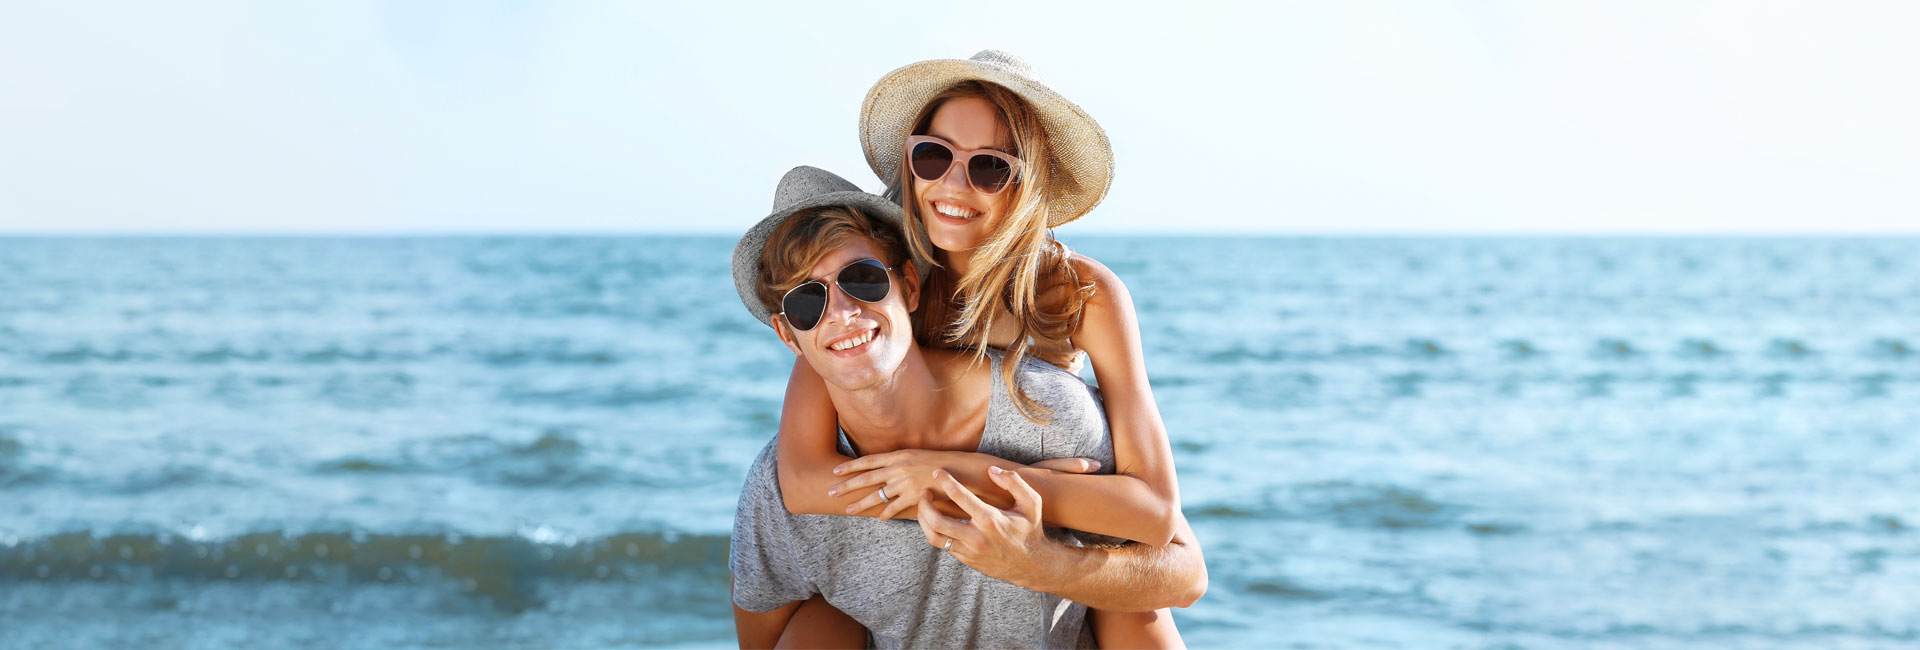 Romantic puerto vallarta activities